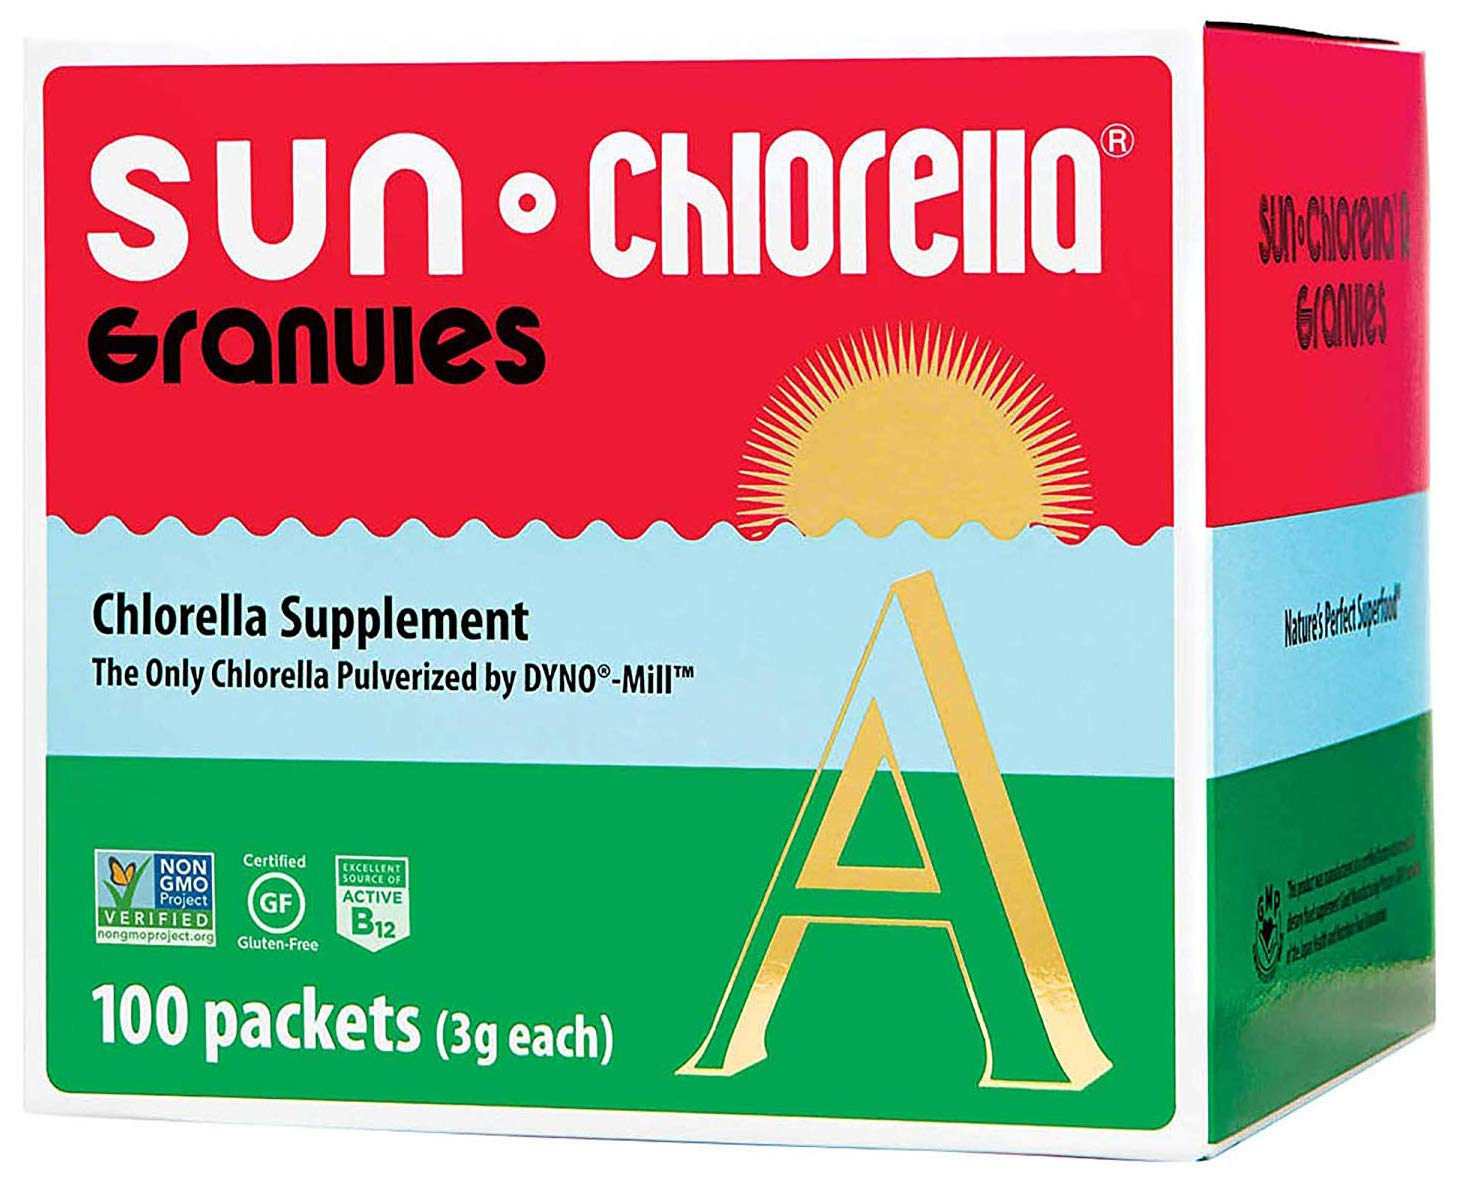 SUN CHLORELLA – Chlorella Supplement Granules 3g – 100 Packets